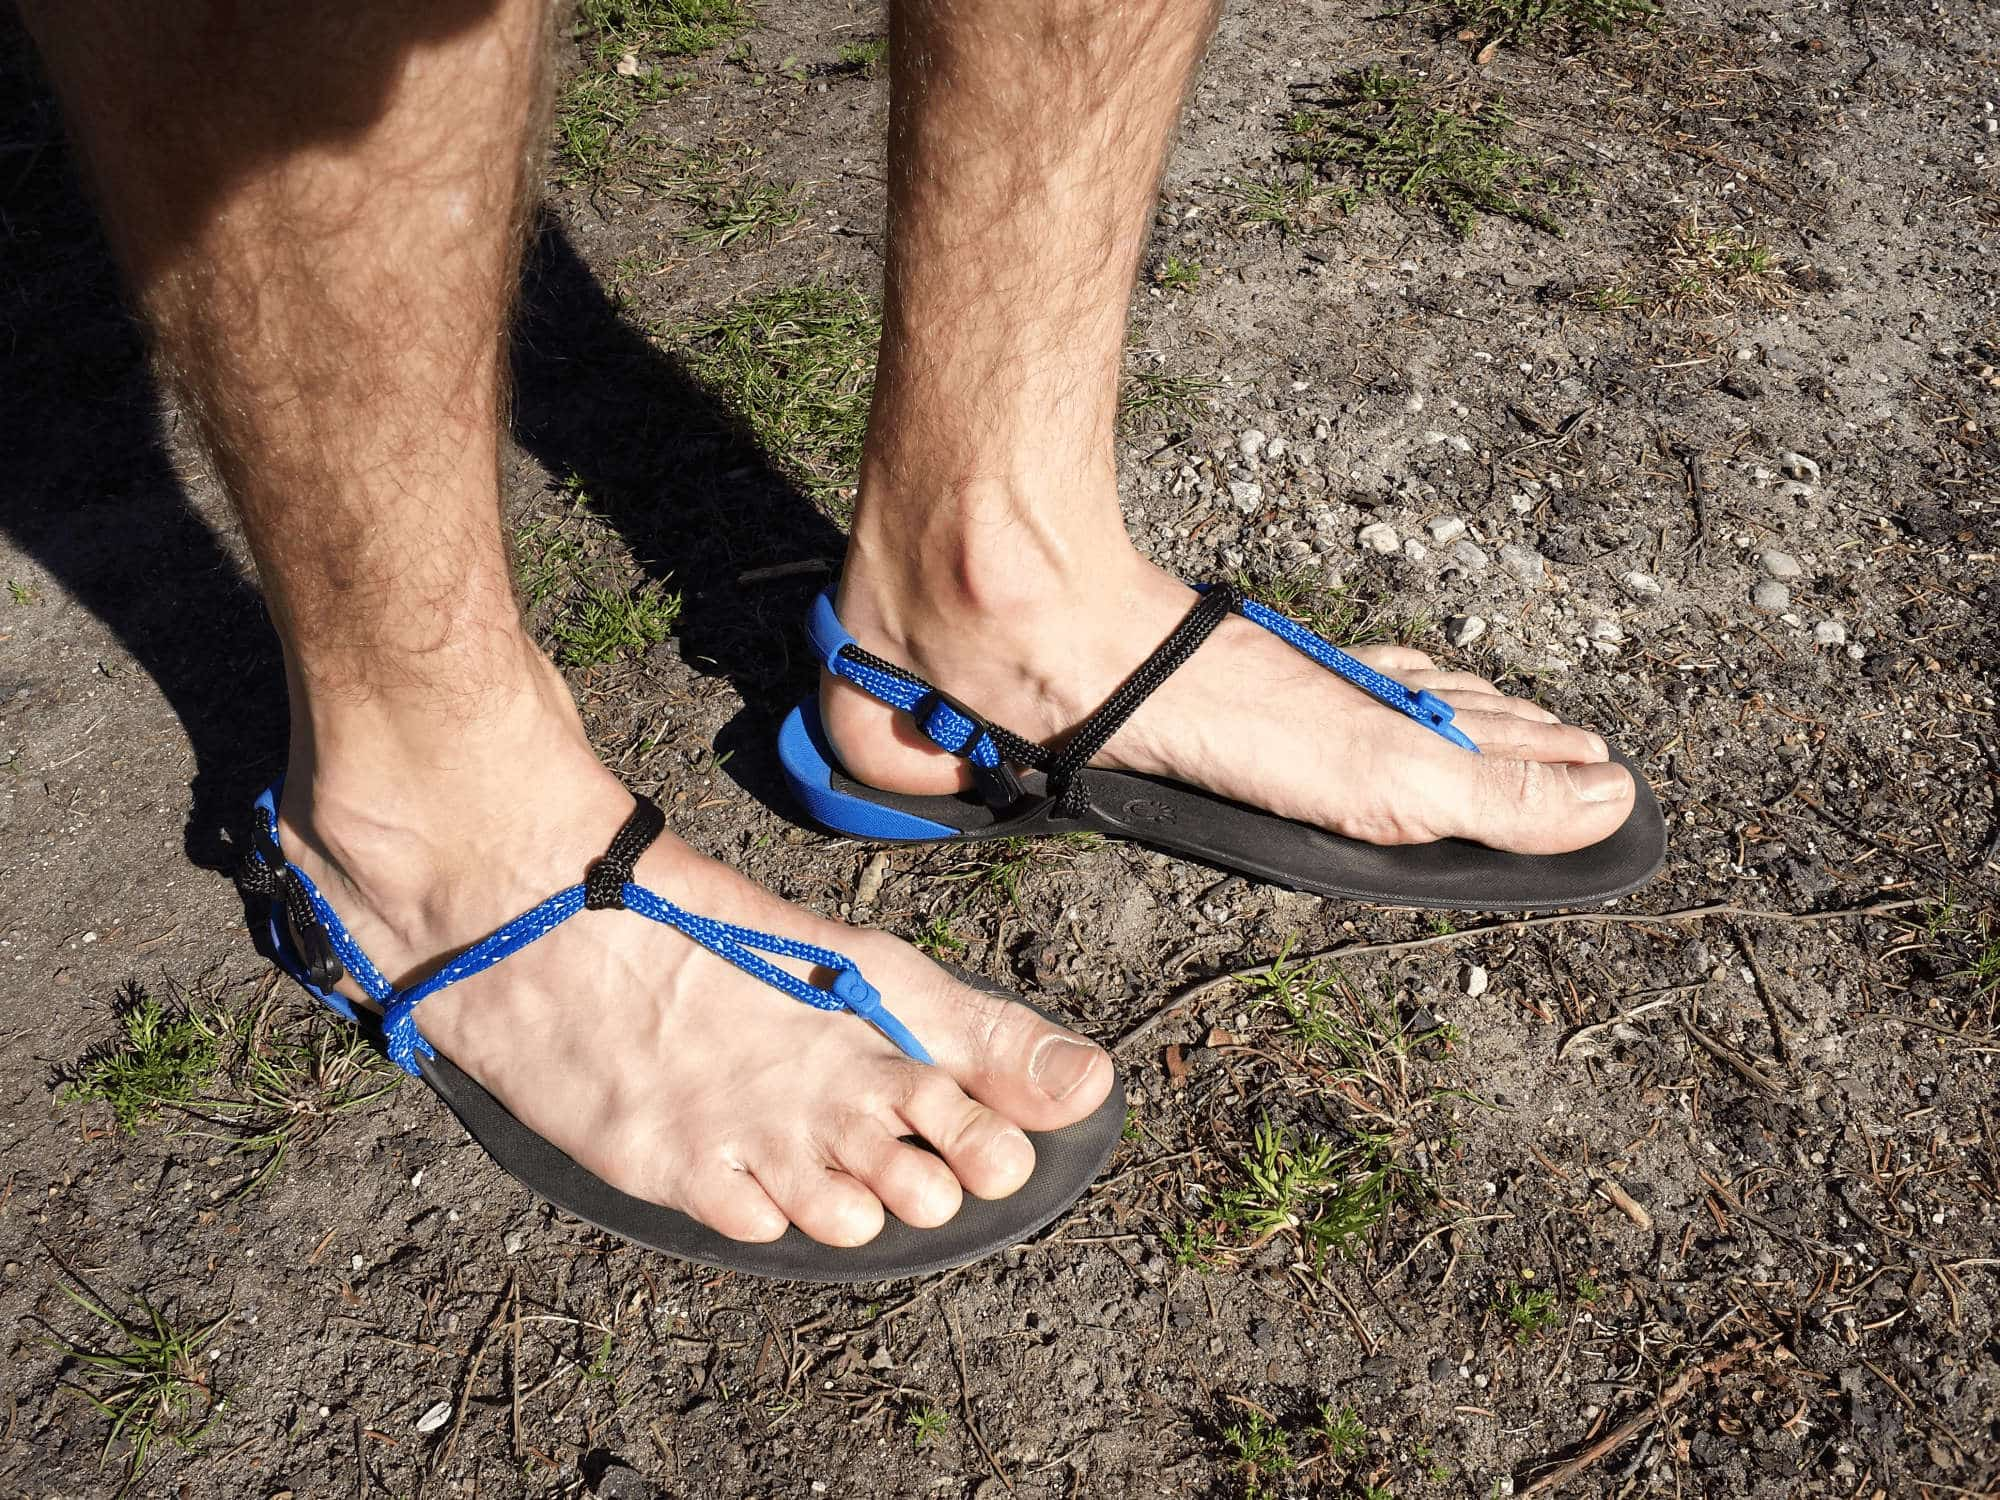 9f38c79ef75 Huaraches Sandals  First 3 Miles in Running Sandals -  FixWillpower